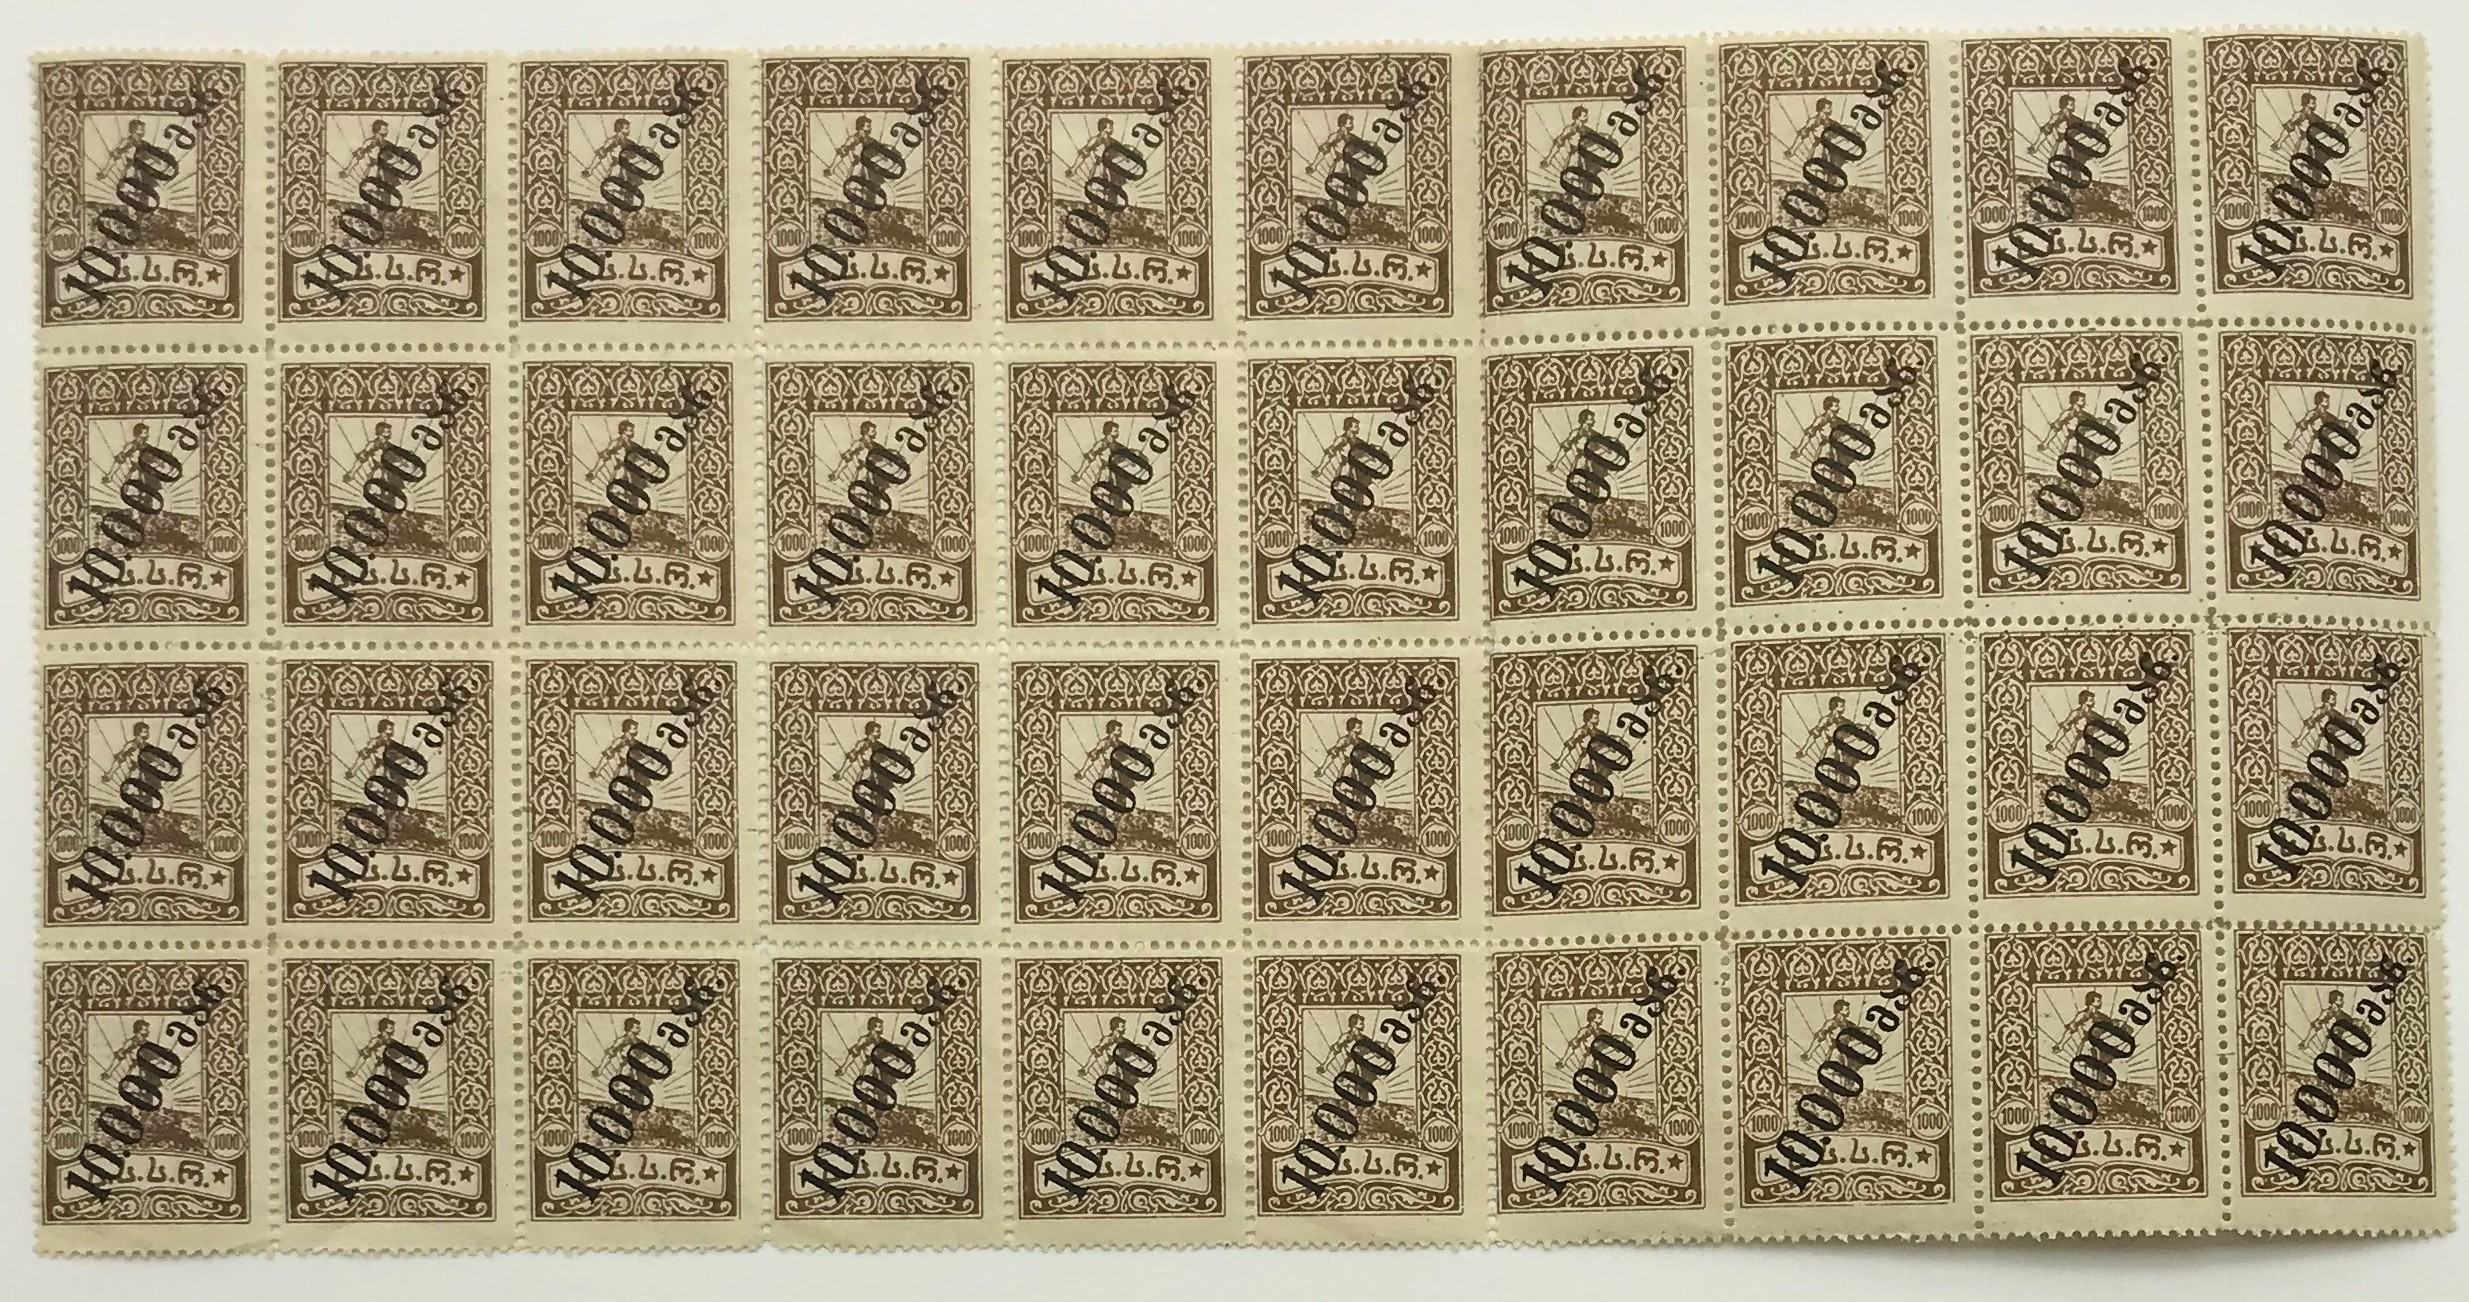 Lot 55 - 1920 BLOCK OF FORTY GEORGIA SOCIALIST SOVIET REPUBLIC STAMPS WITH SURCHARGE IN BLACK